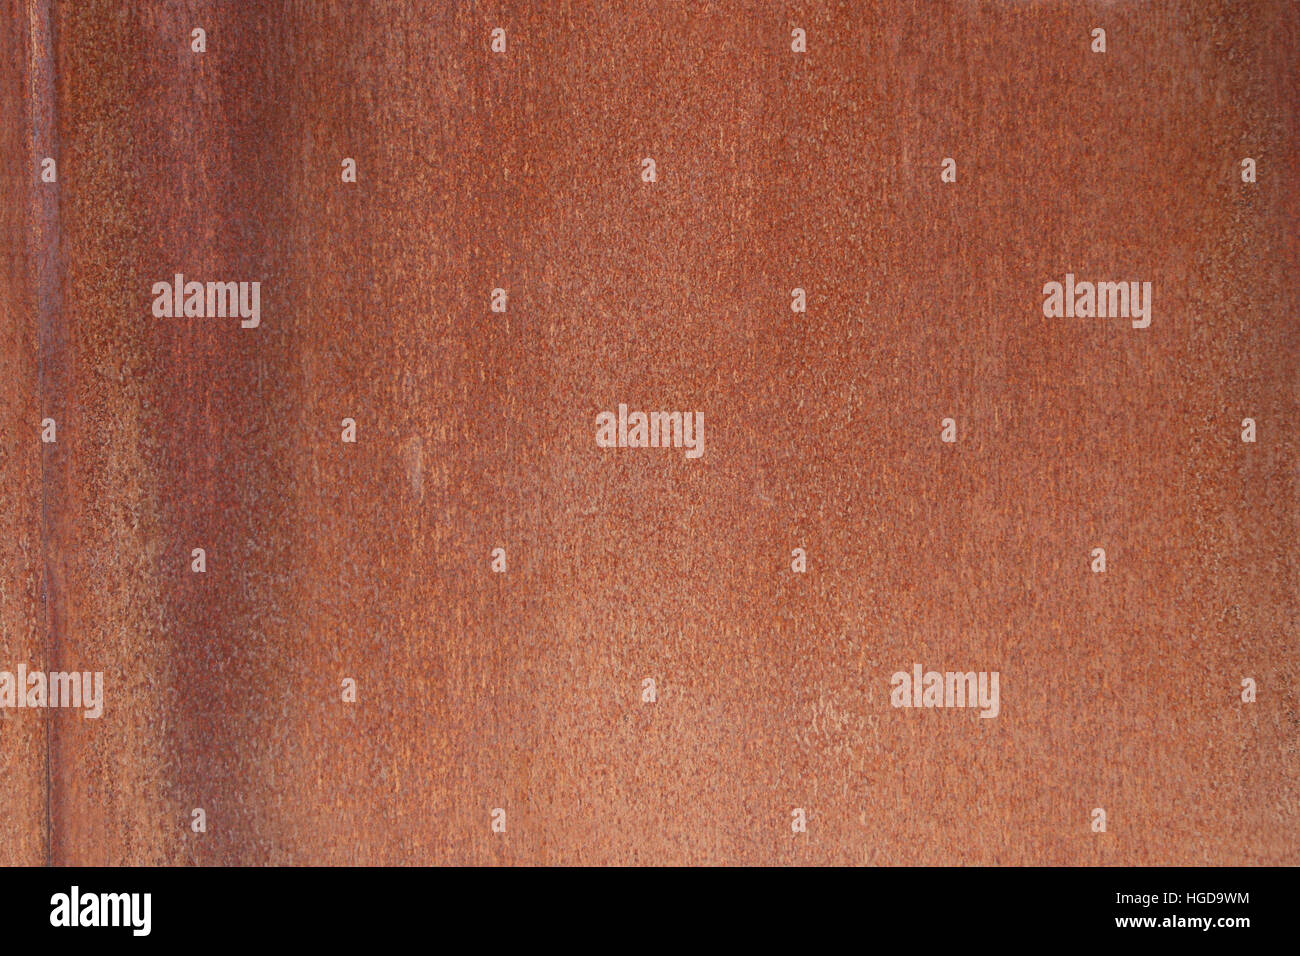 A great rusty brown redish iron background. - Stock Image